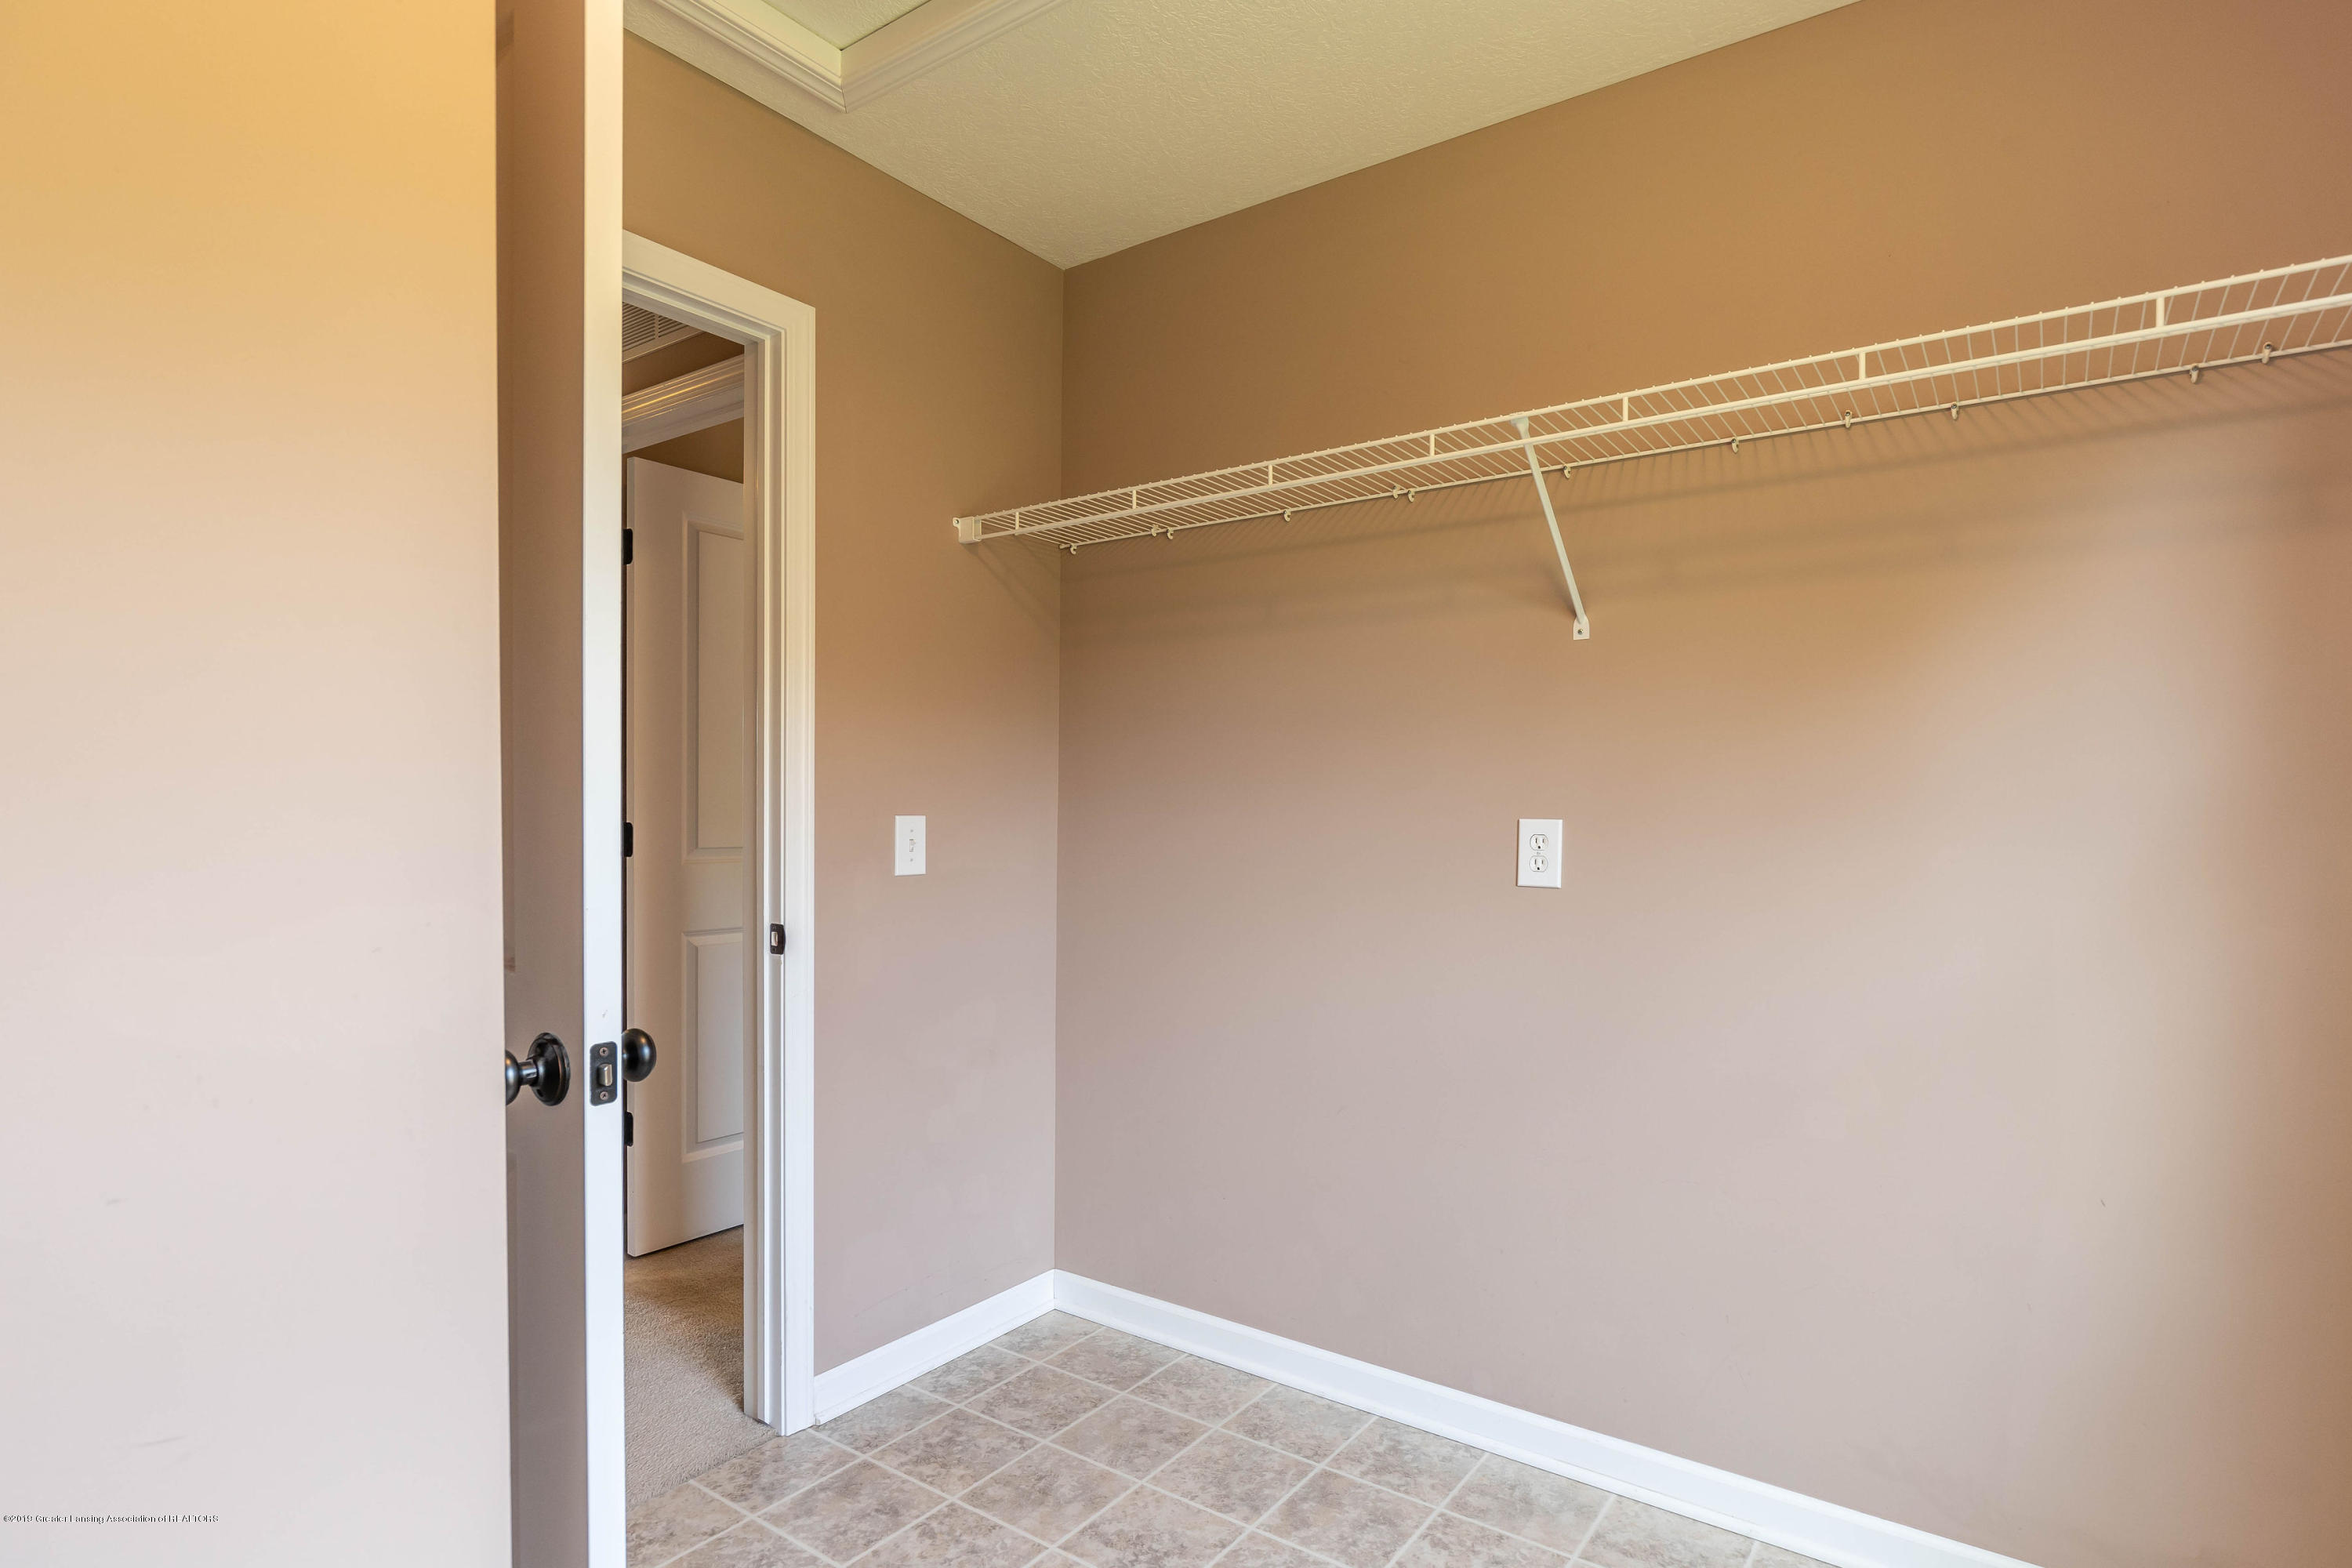 15125 Loxley Ln - loxleylaundry(1of1) - 21